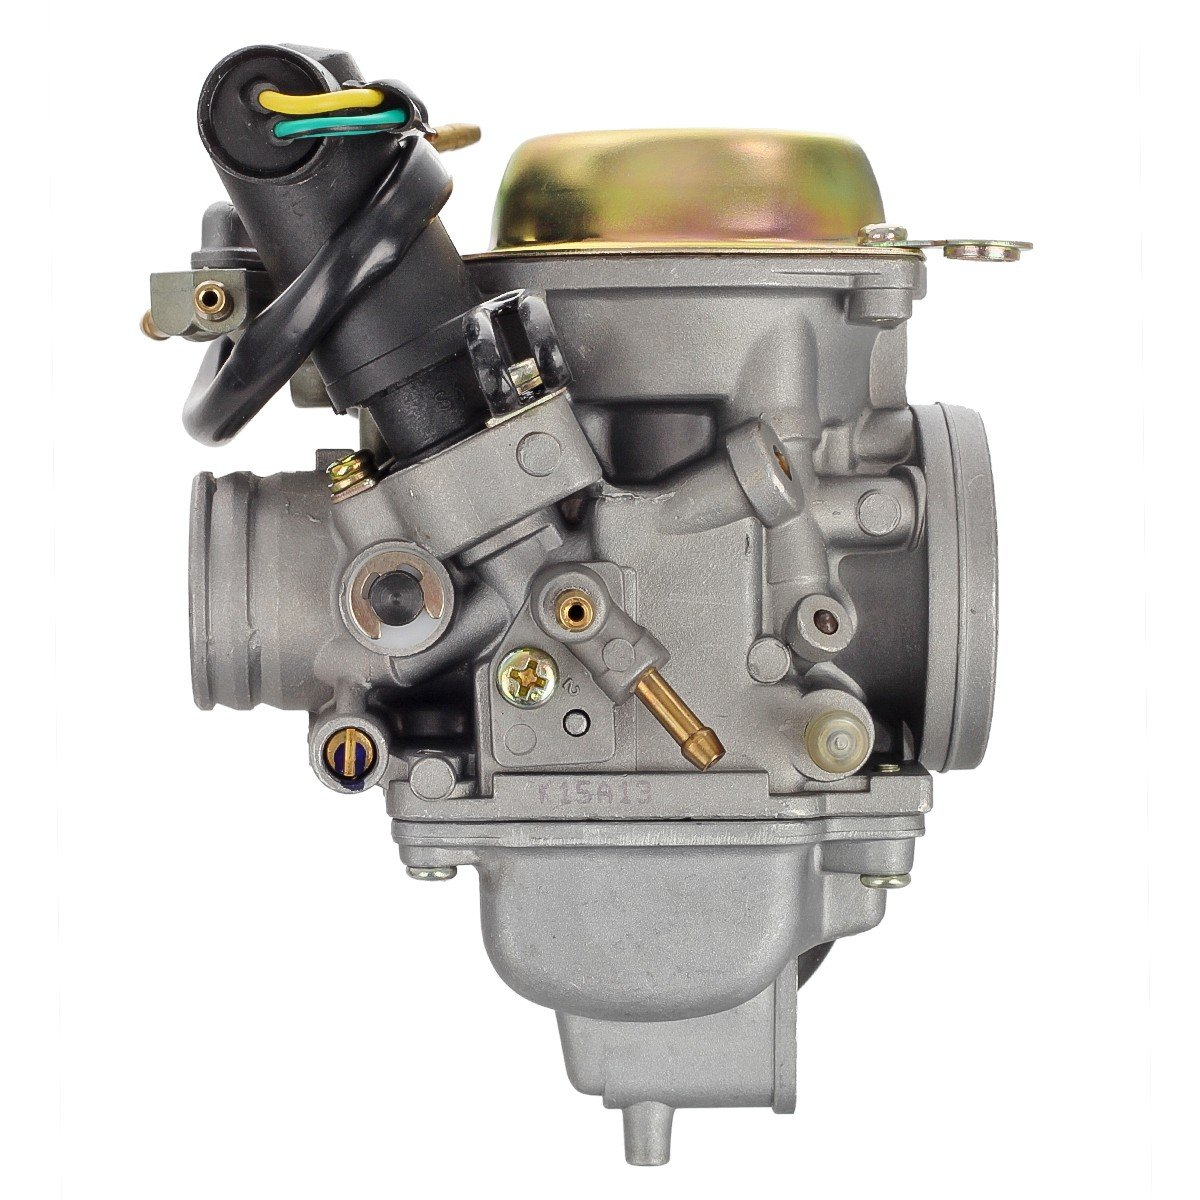 Amazon.com: ATV Carburetor PD26JG for 1985-1987 Honda Elite 150 ...